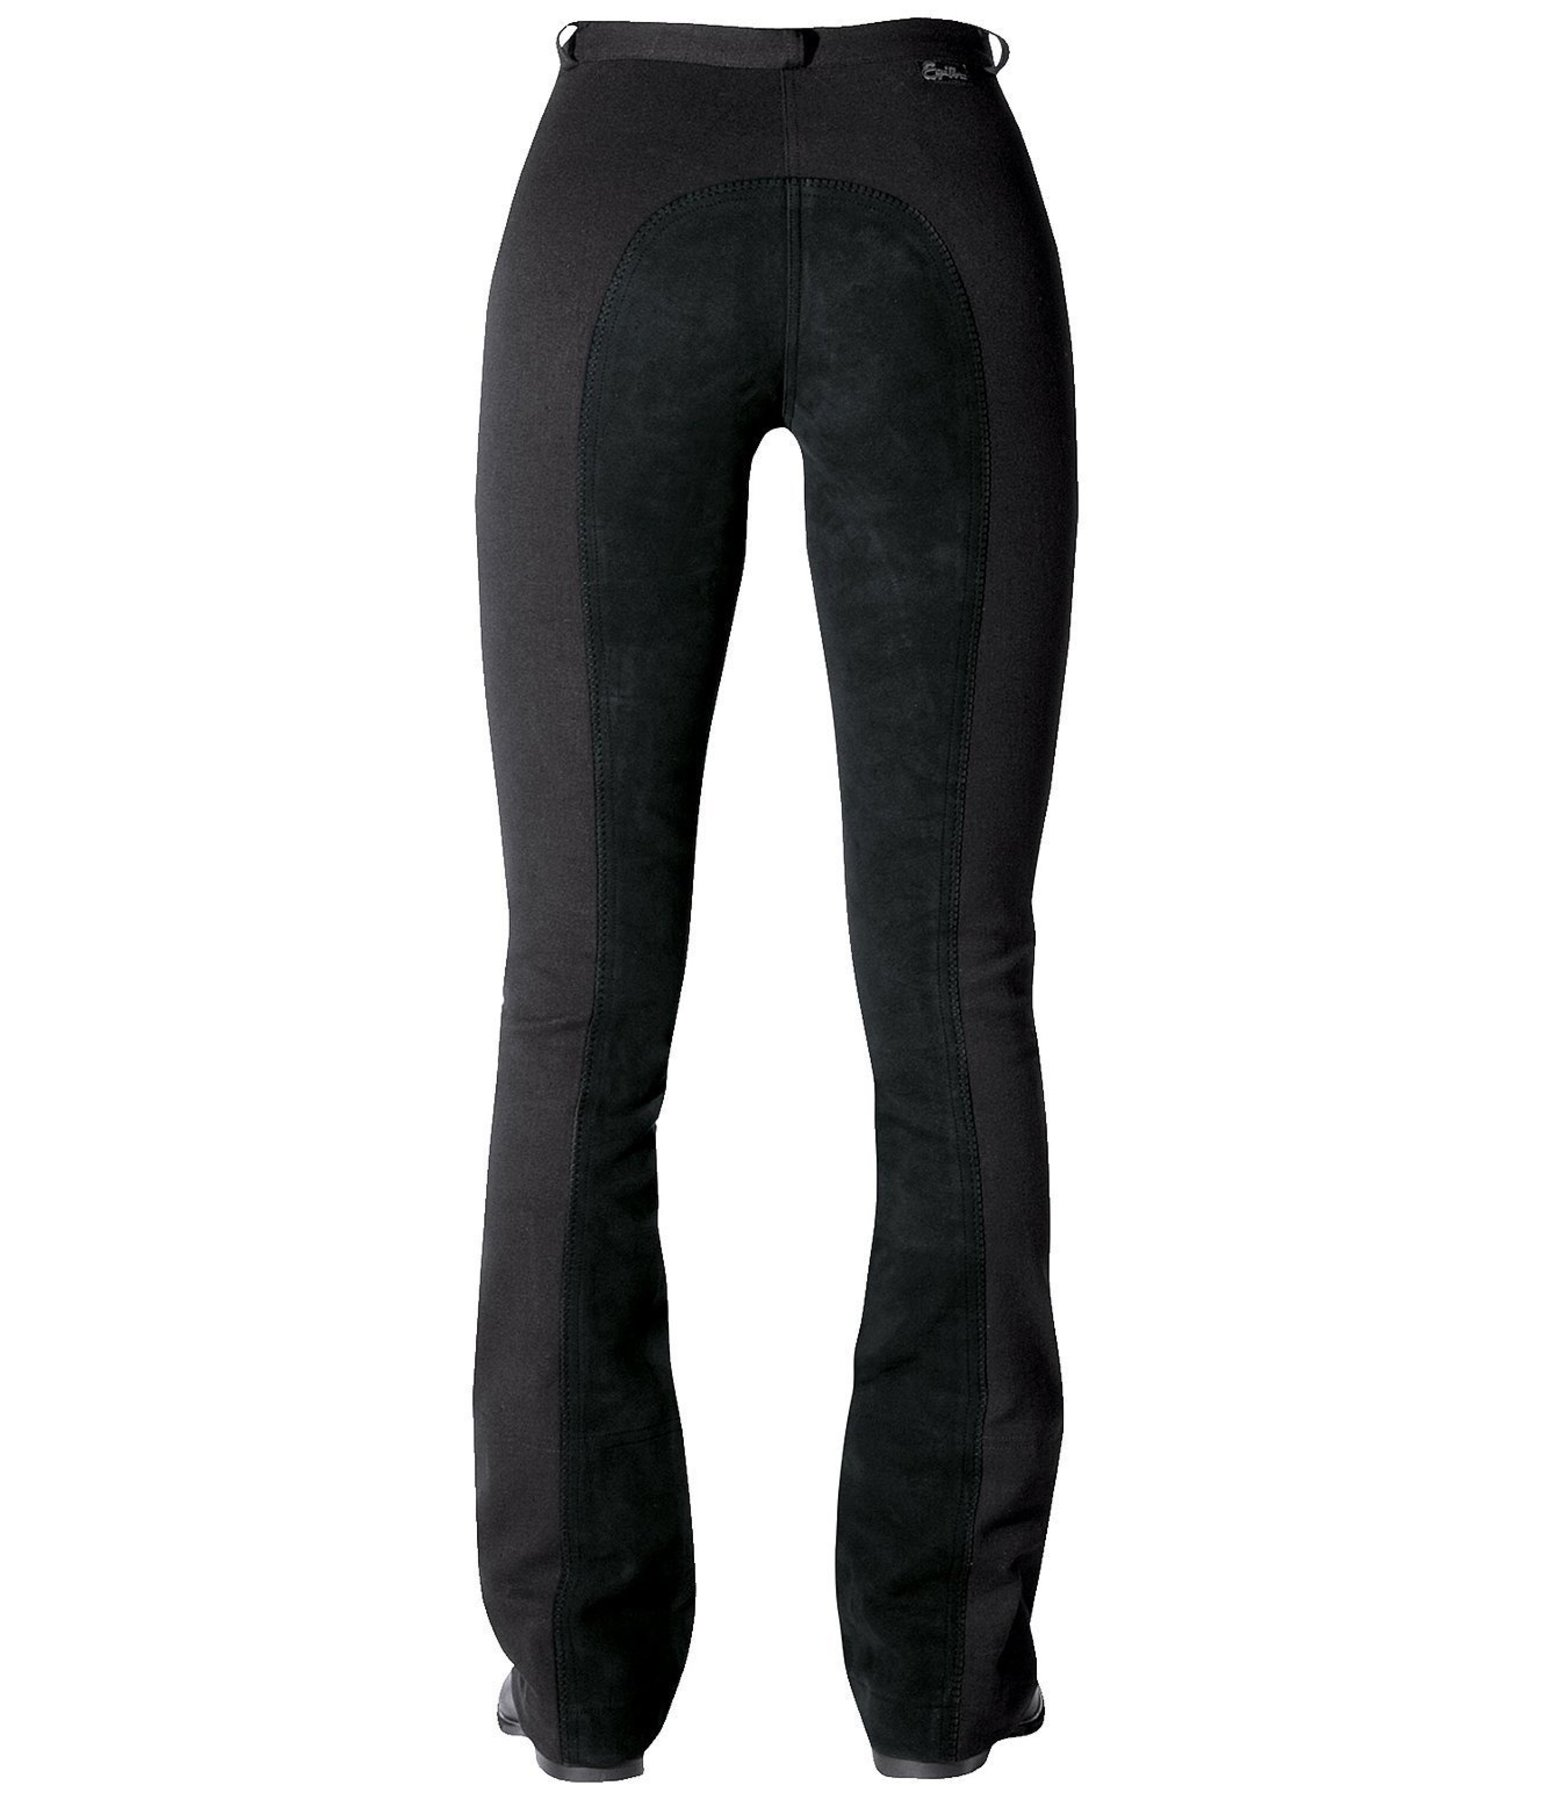 Pantalon d'équitation jodhpur  Super-Stretch